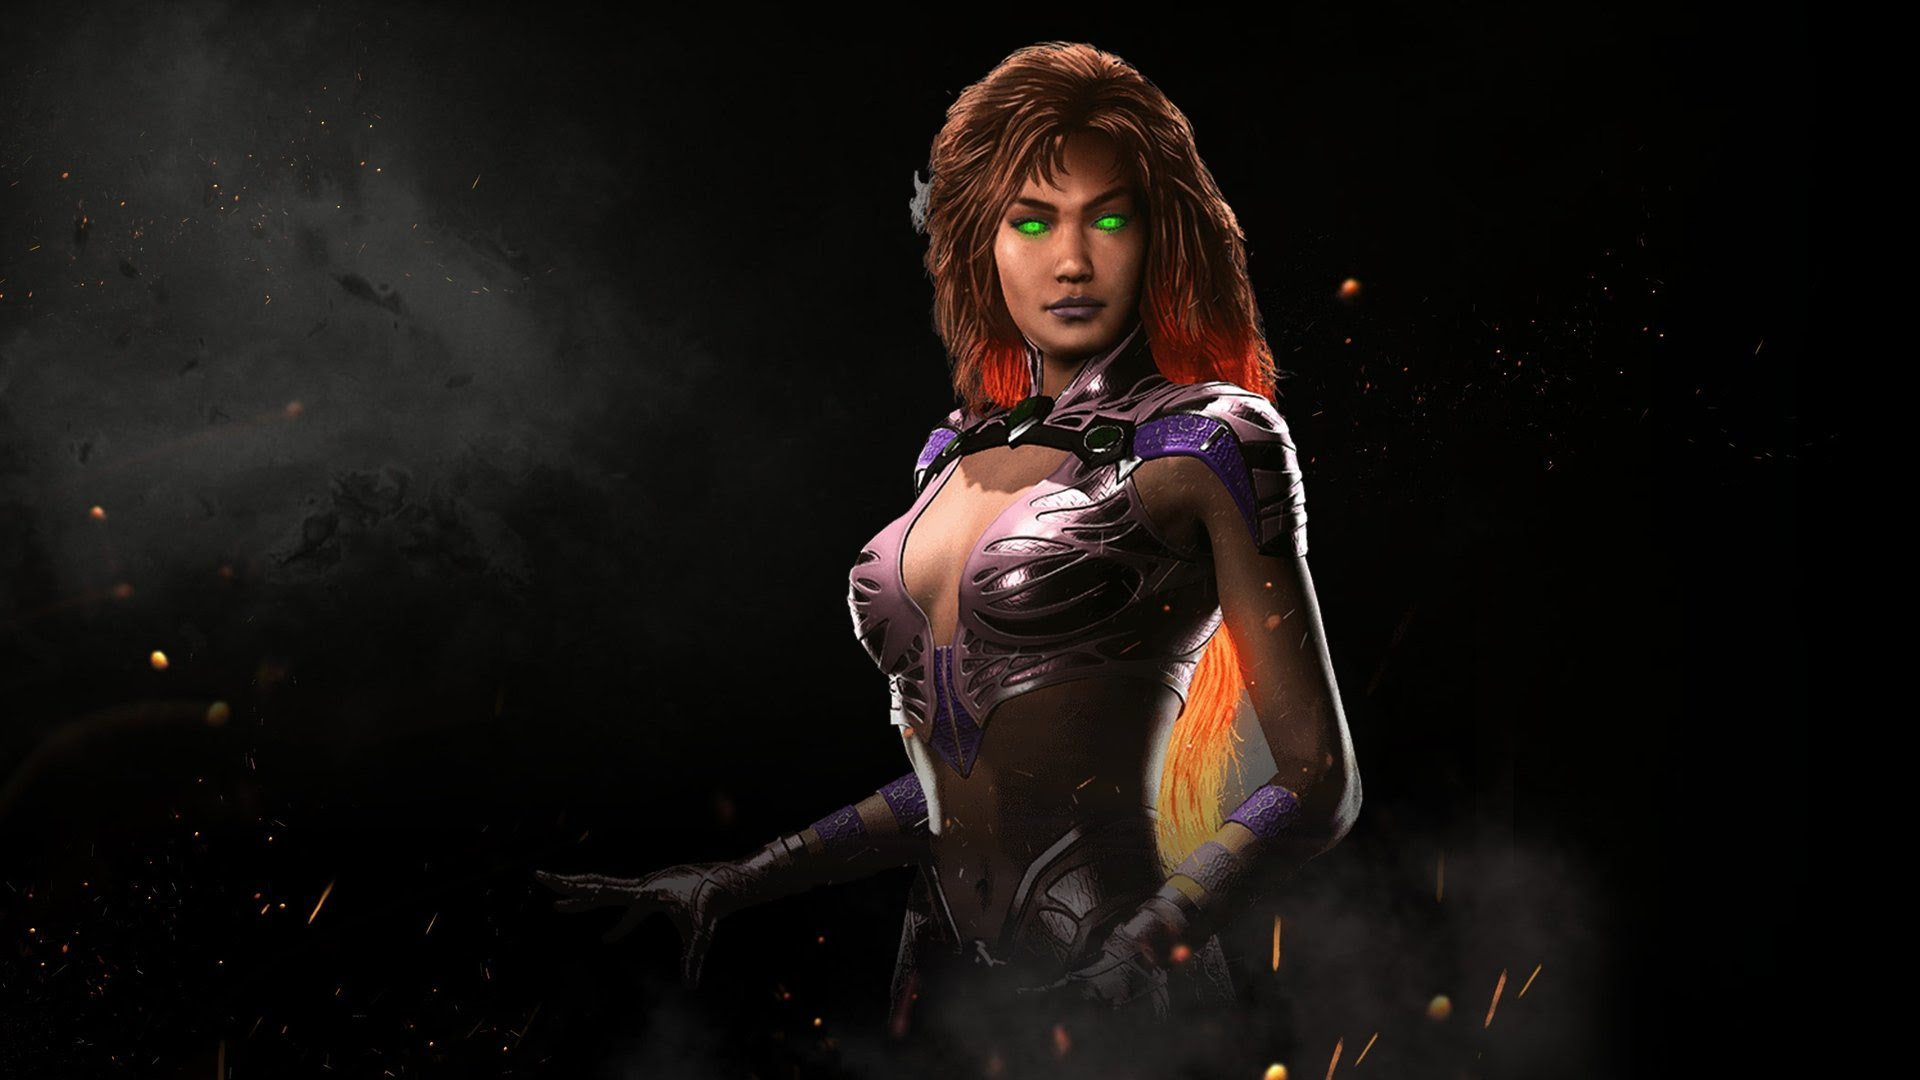 Starfire lights up the skies of Injustice 2 screenshot